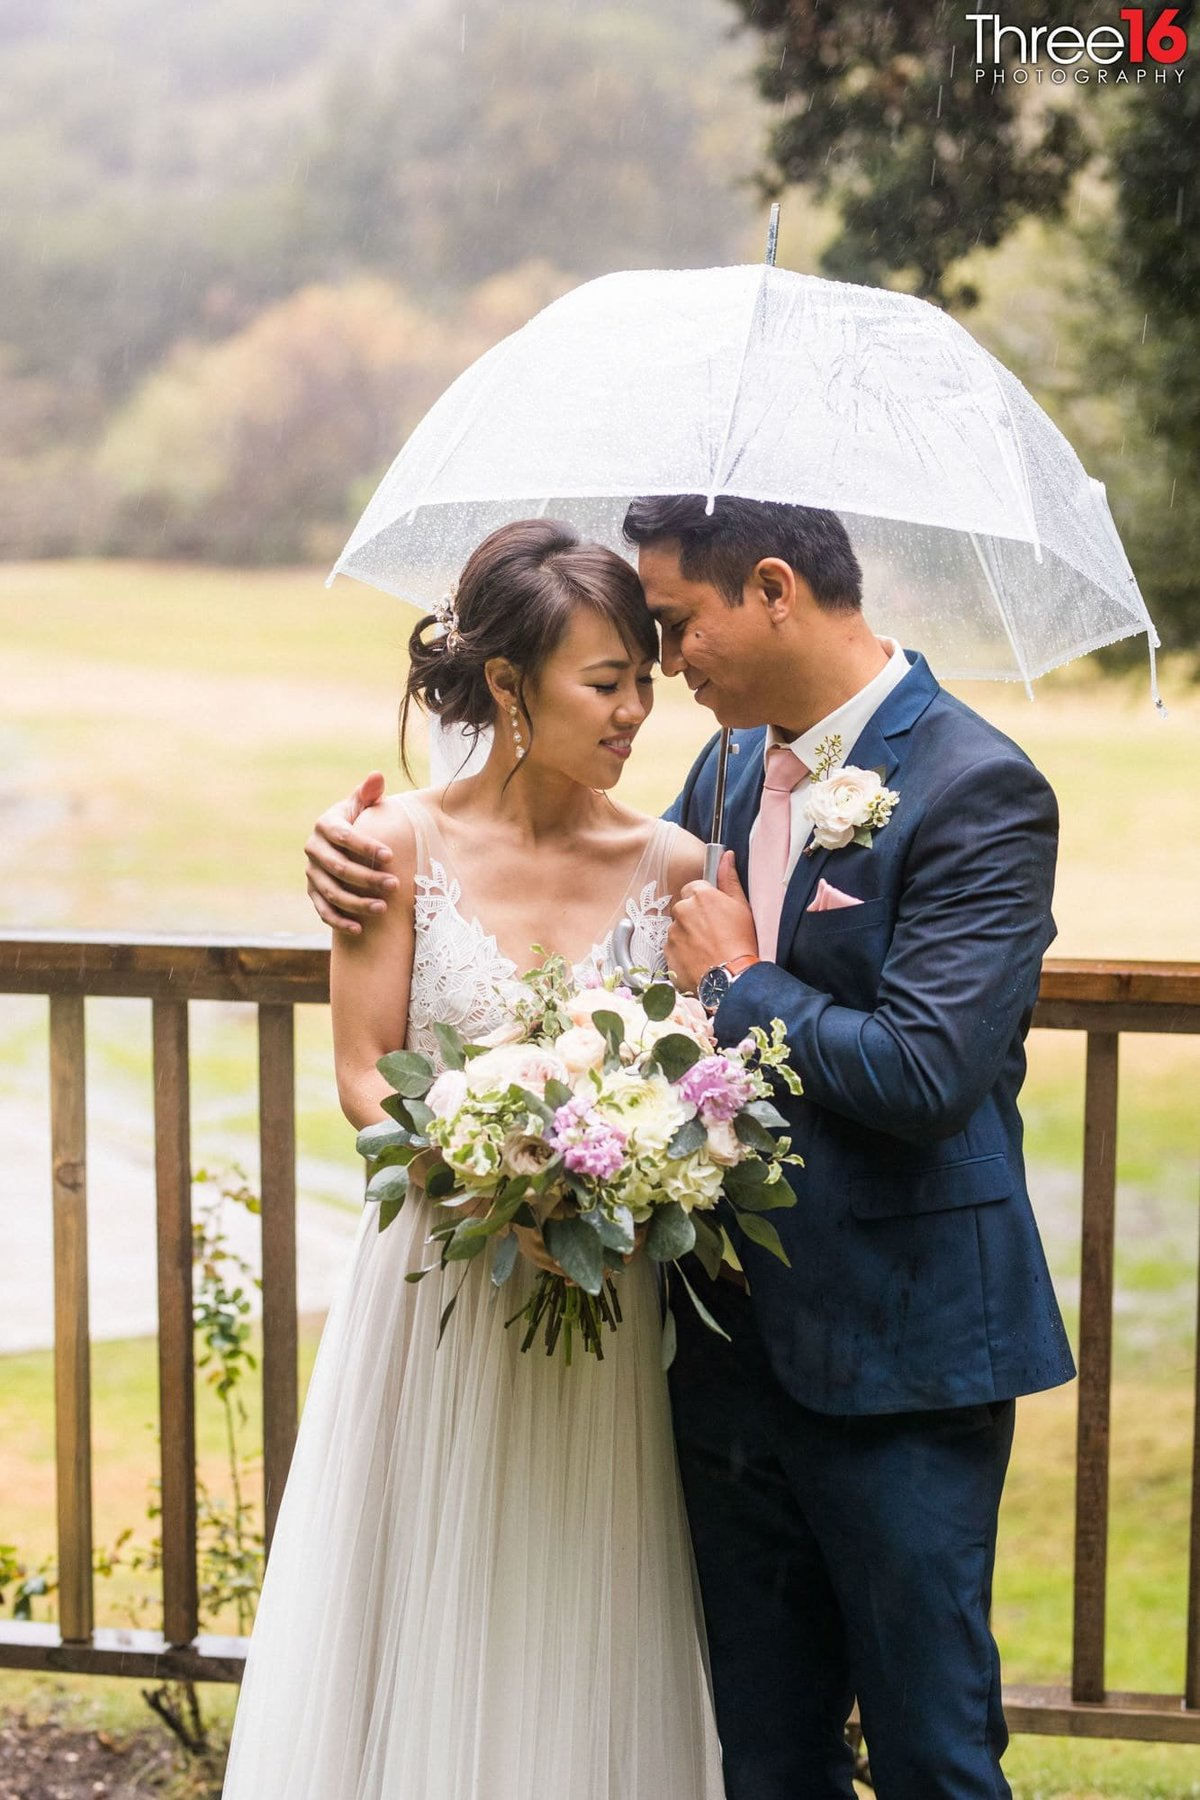 Bride and Groom share a quiet moment together under an umbrella due to rain